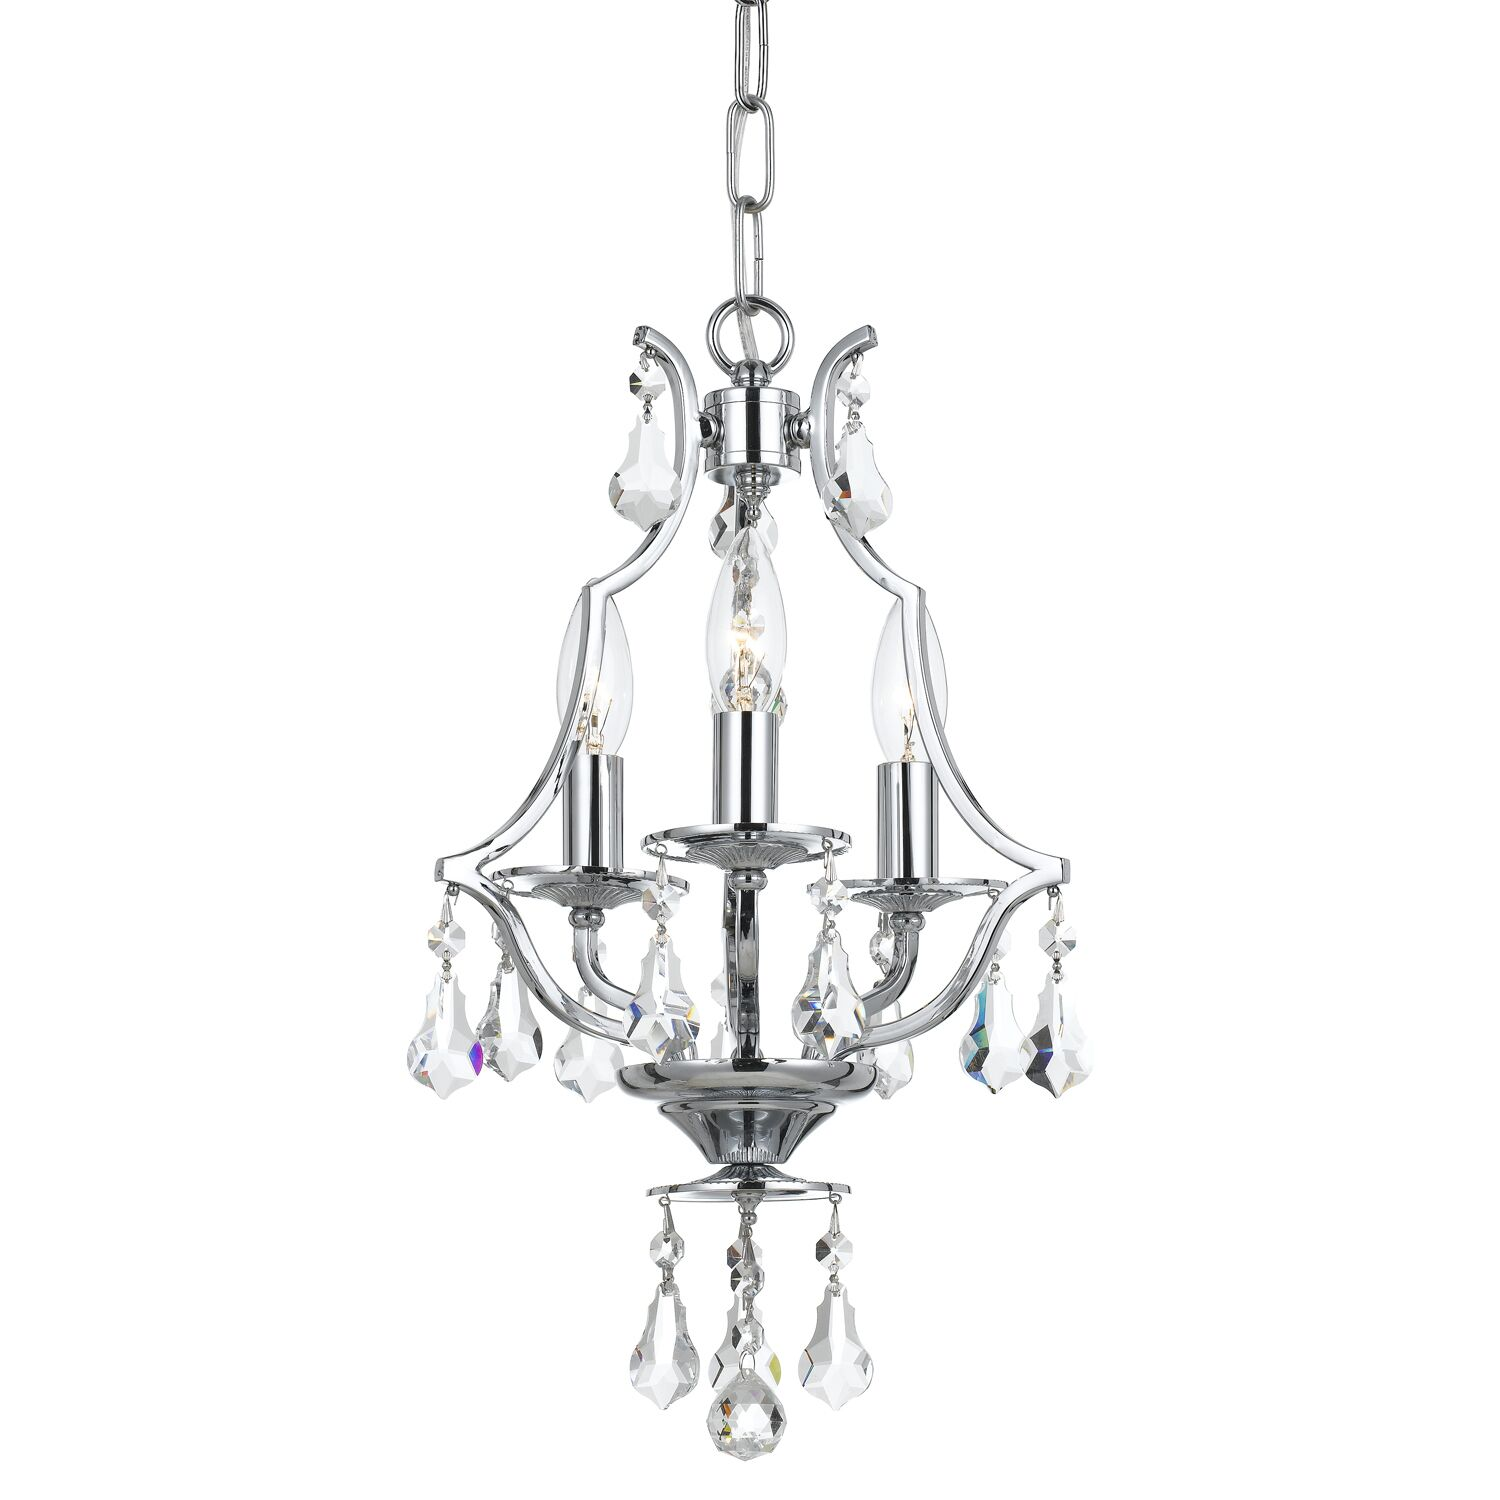 Sanford Swarovski Strass 3-Light Candle Style Chandelier